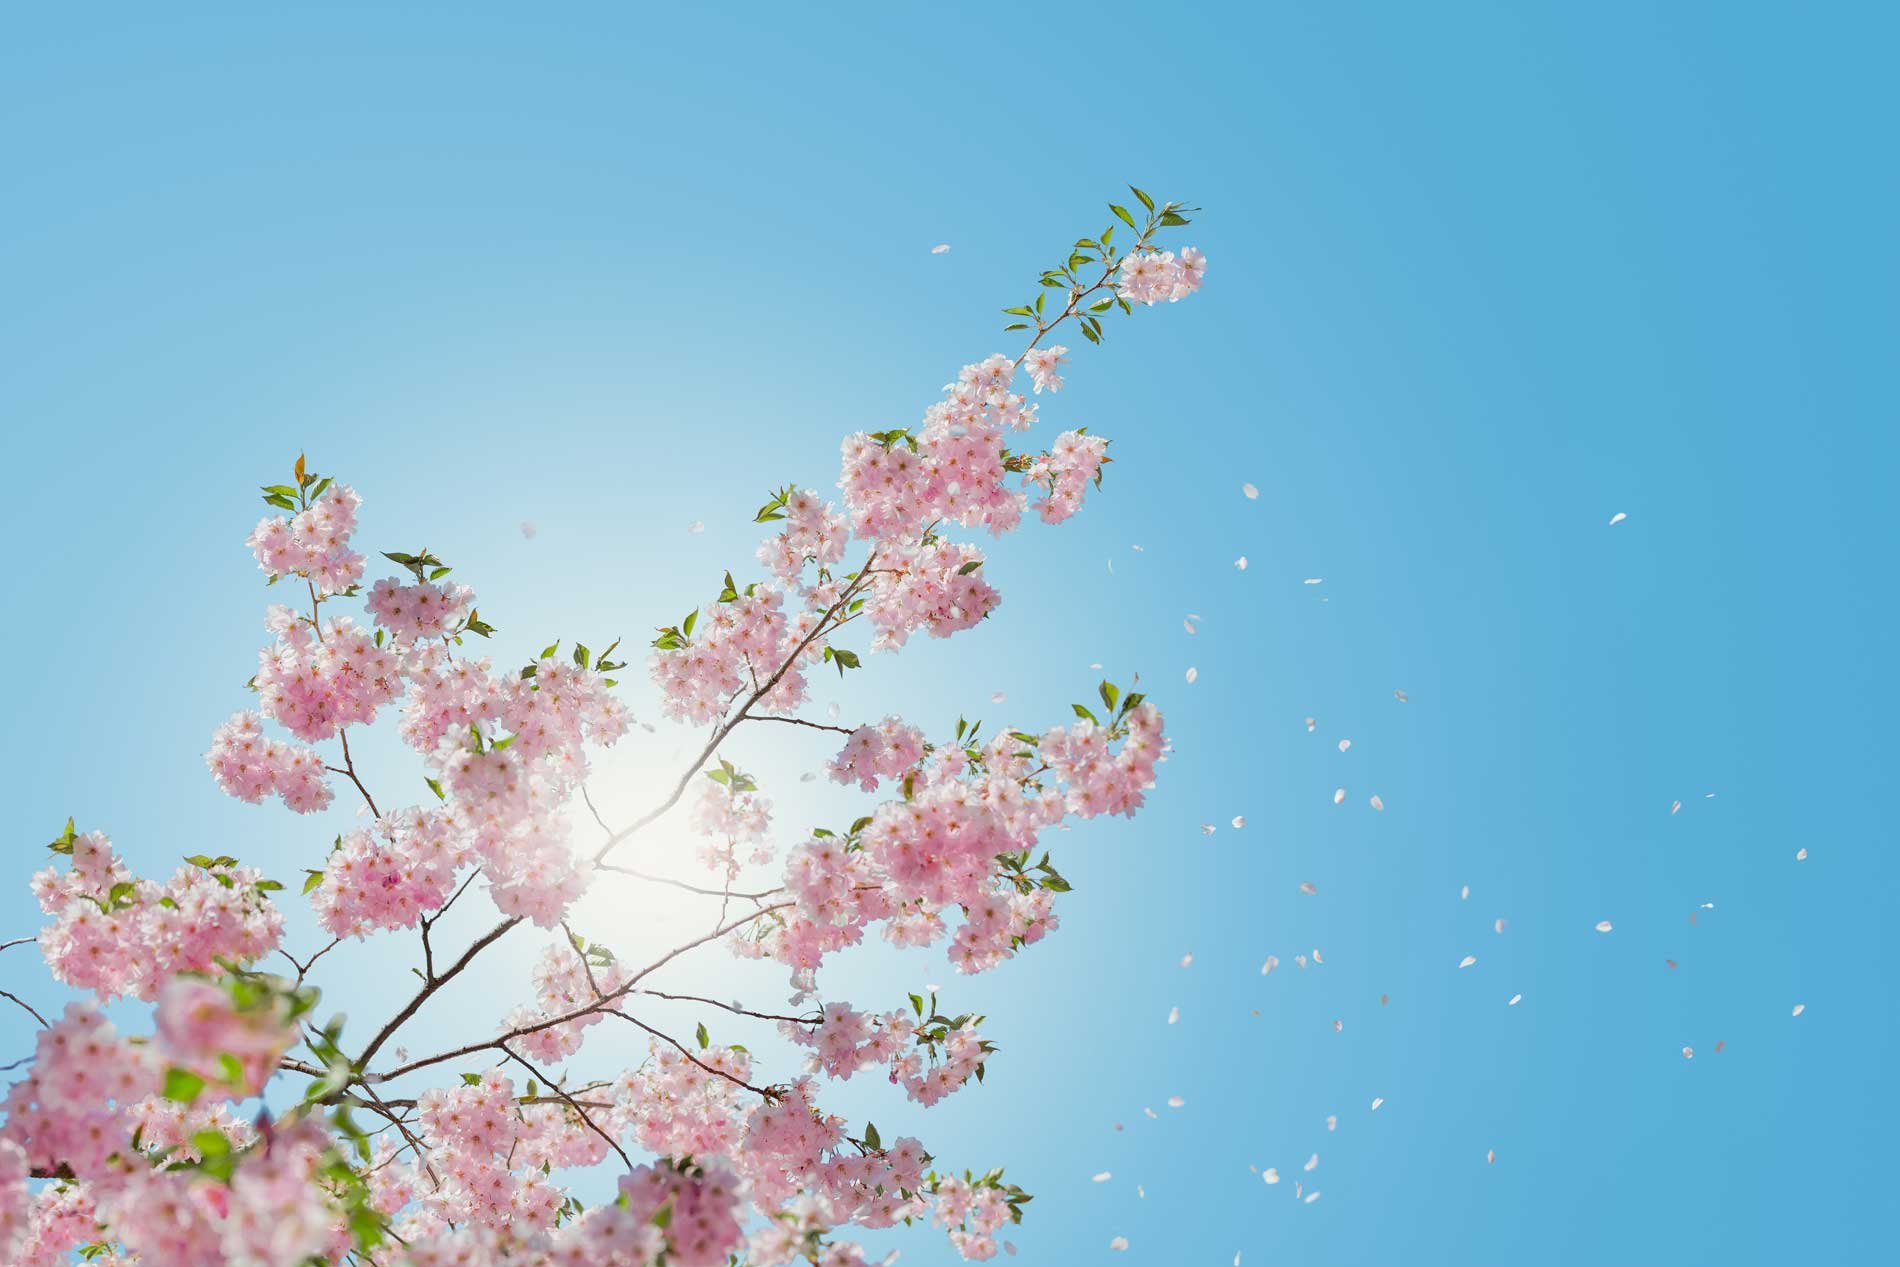 cherry blossom against a clear blue sky